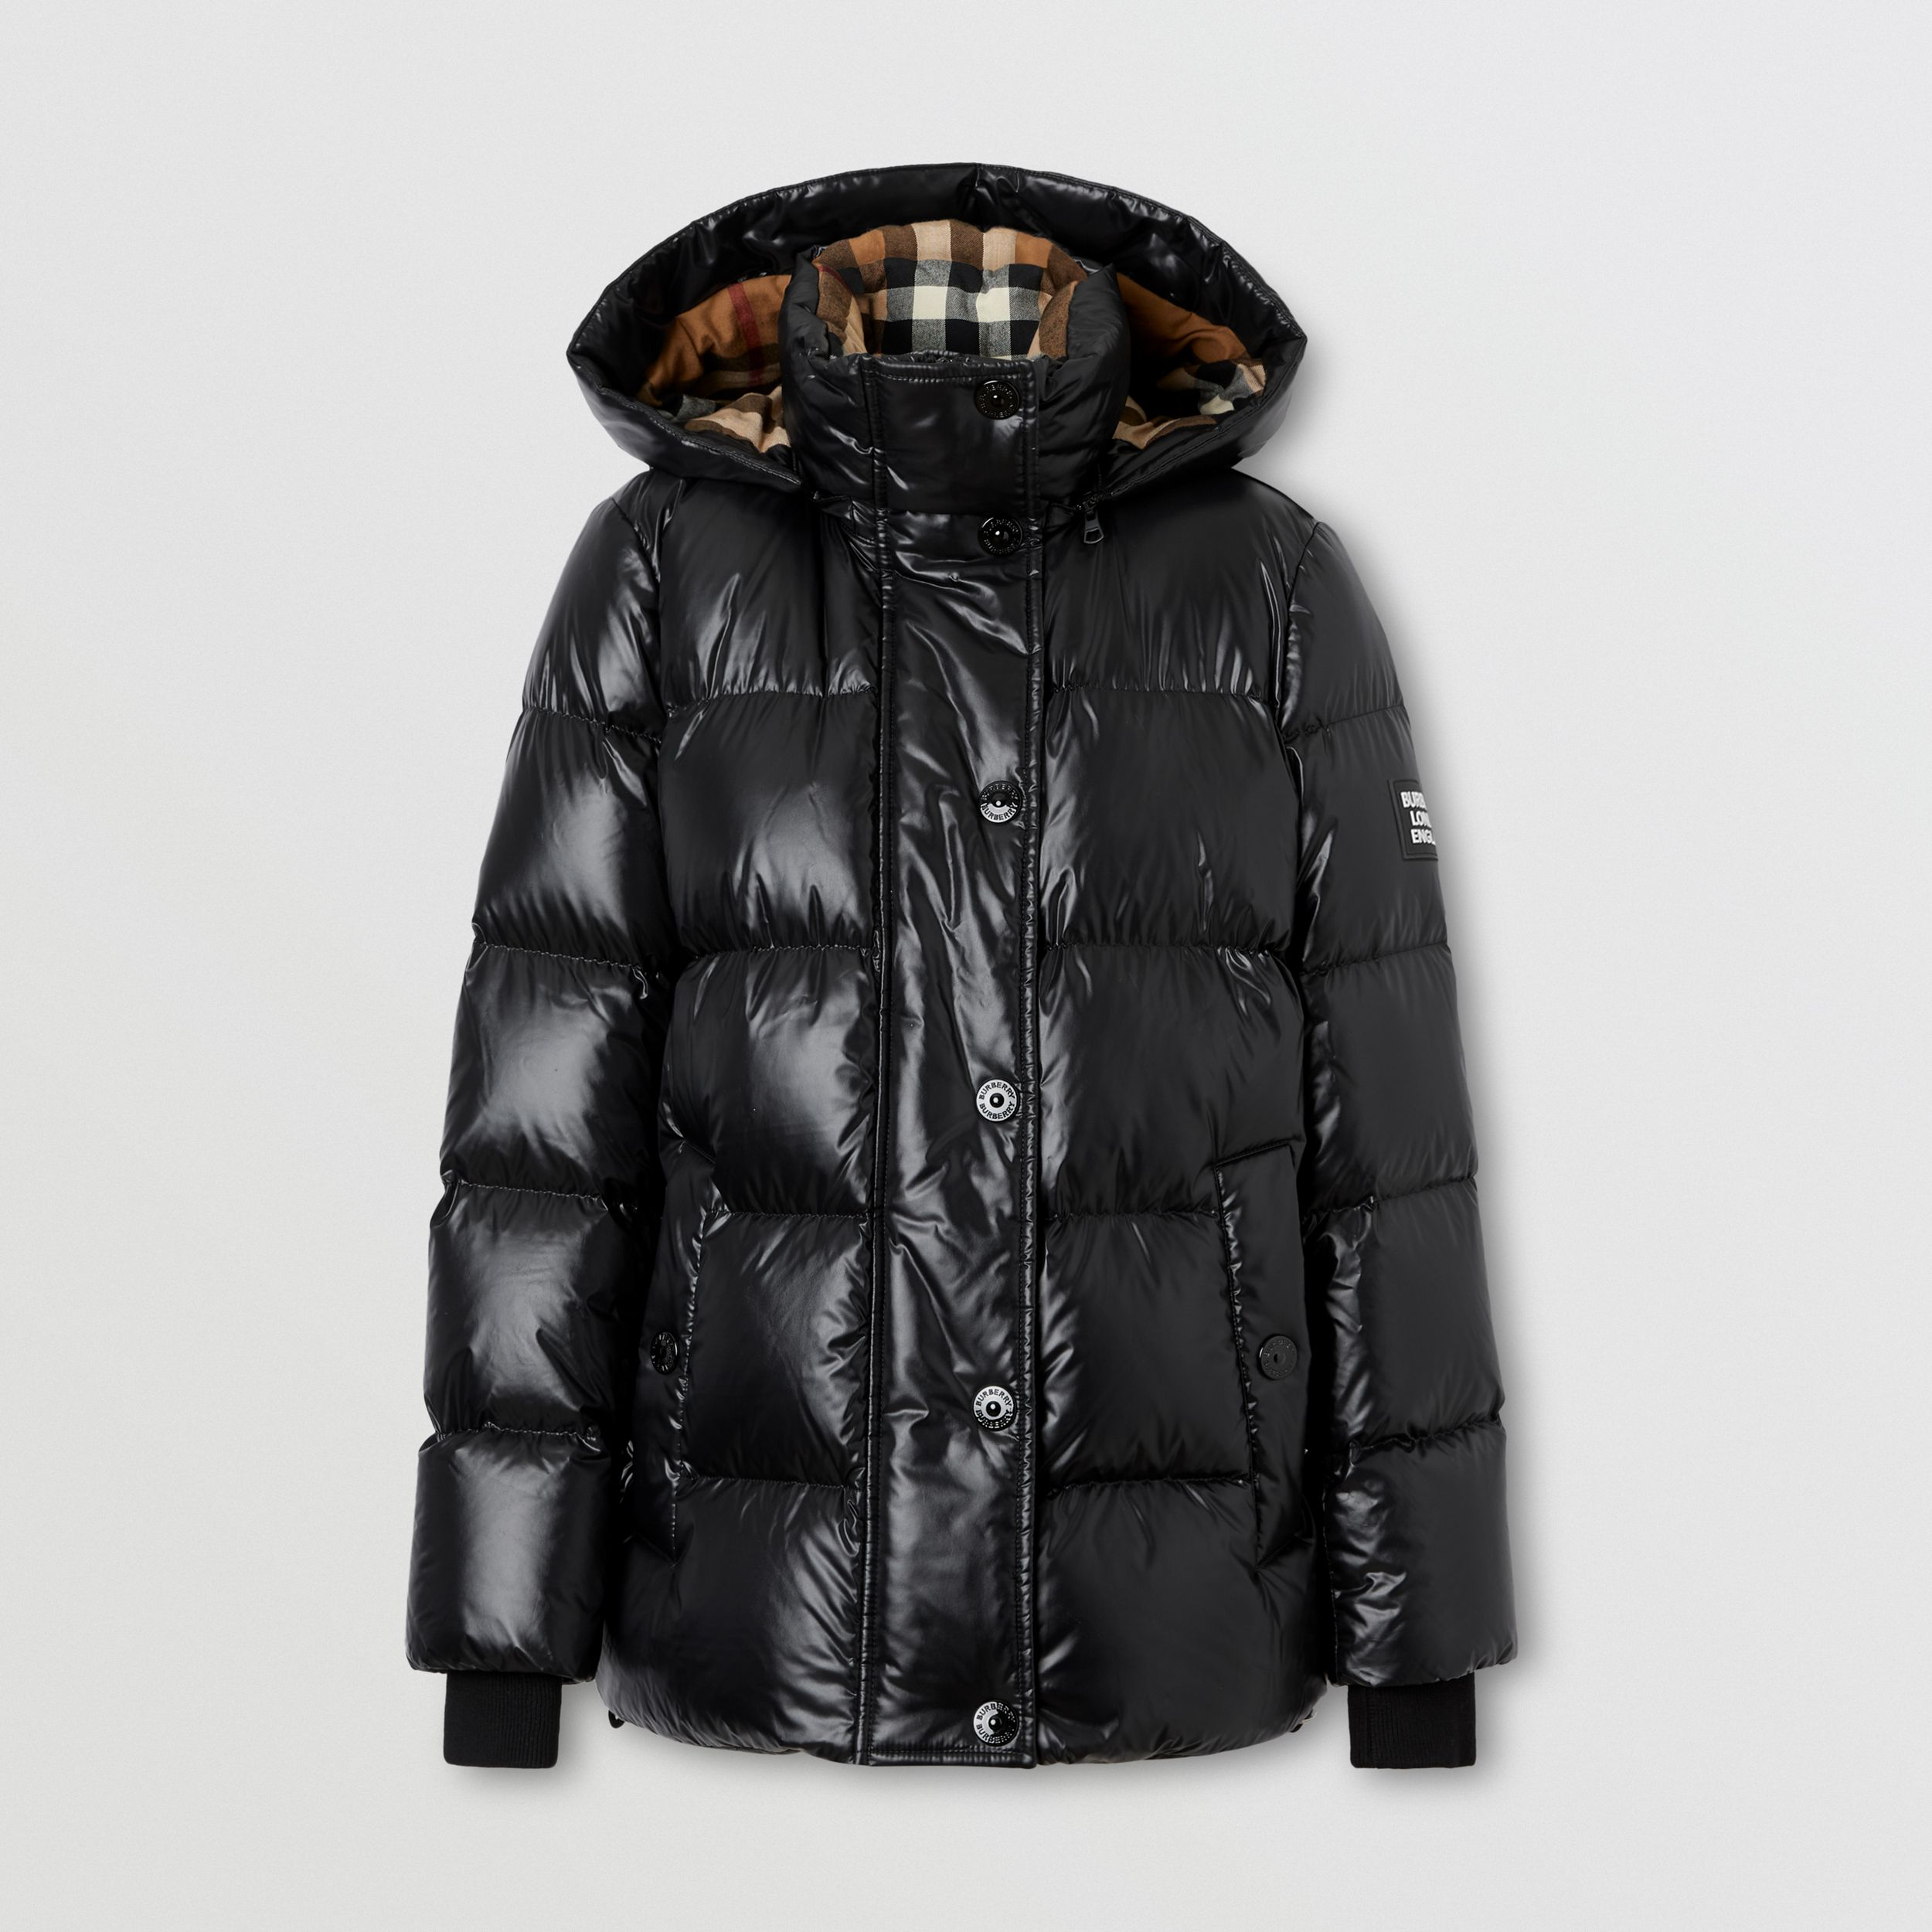 Detachable Hood Logo Appliqué Puffer Jacket in Black - Women | Burberry - 4